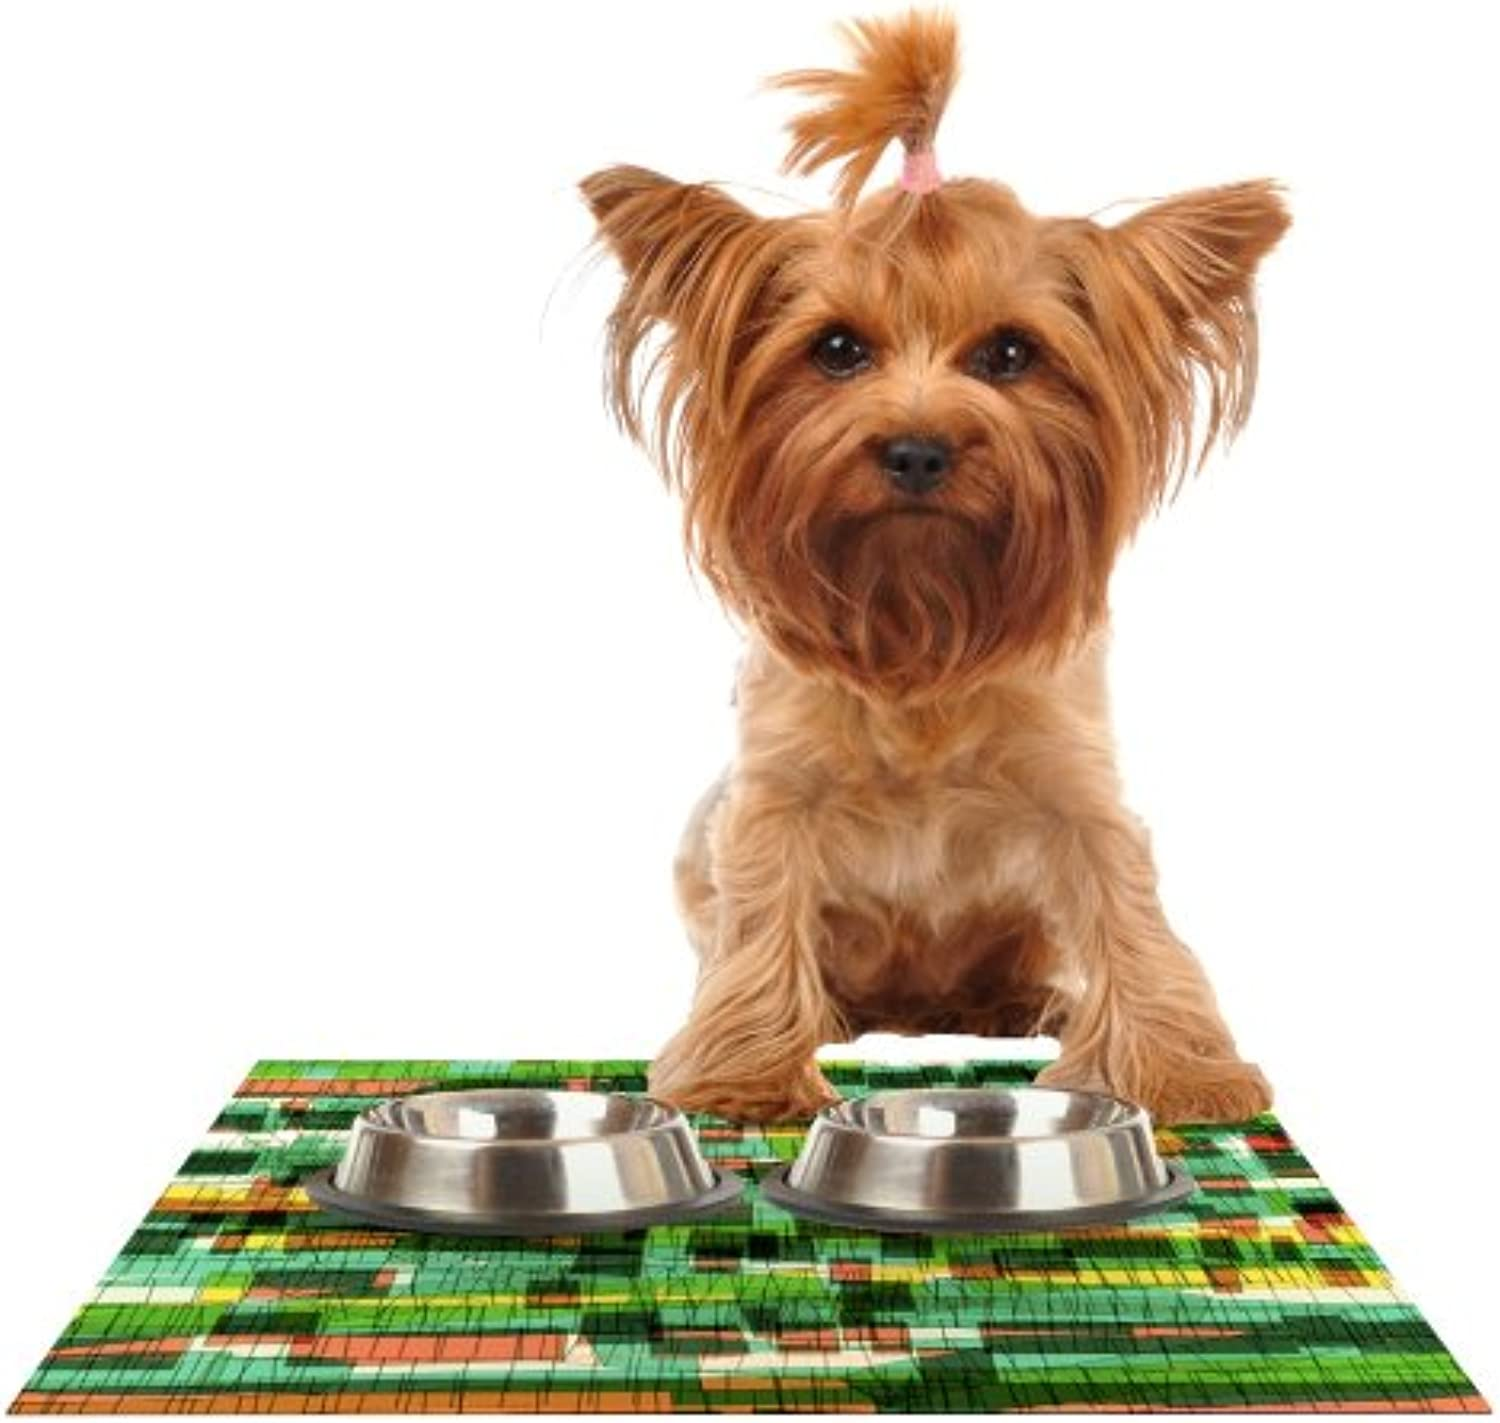 Kess InHouse Frederic LevyHadida Squares Traffic Green Feeding Mat for Pet Bowl, 18 by 13Inch